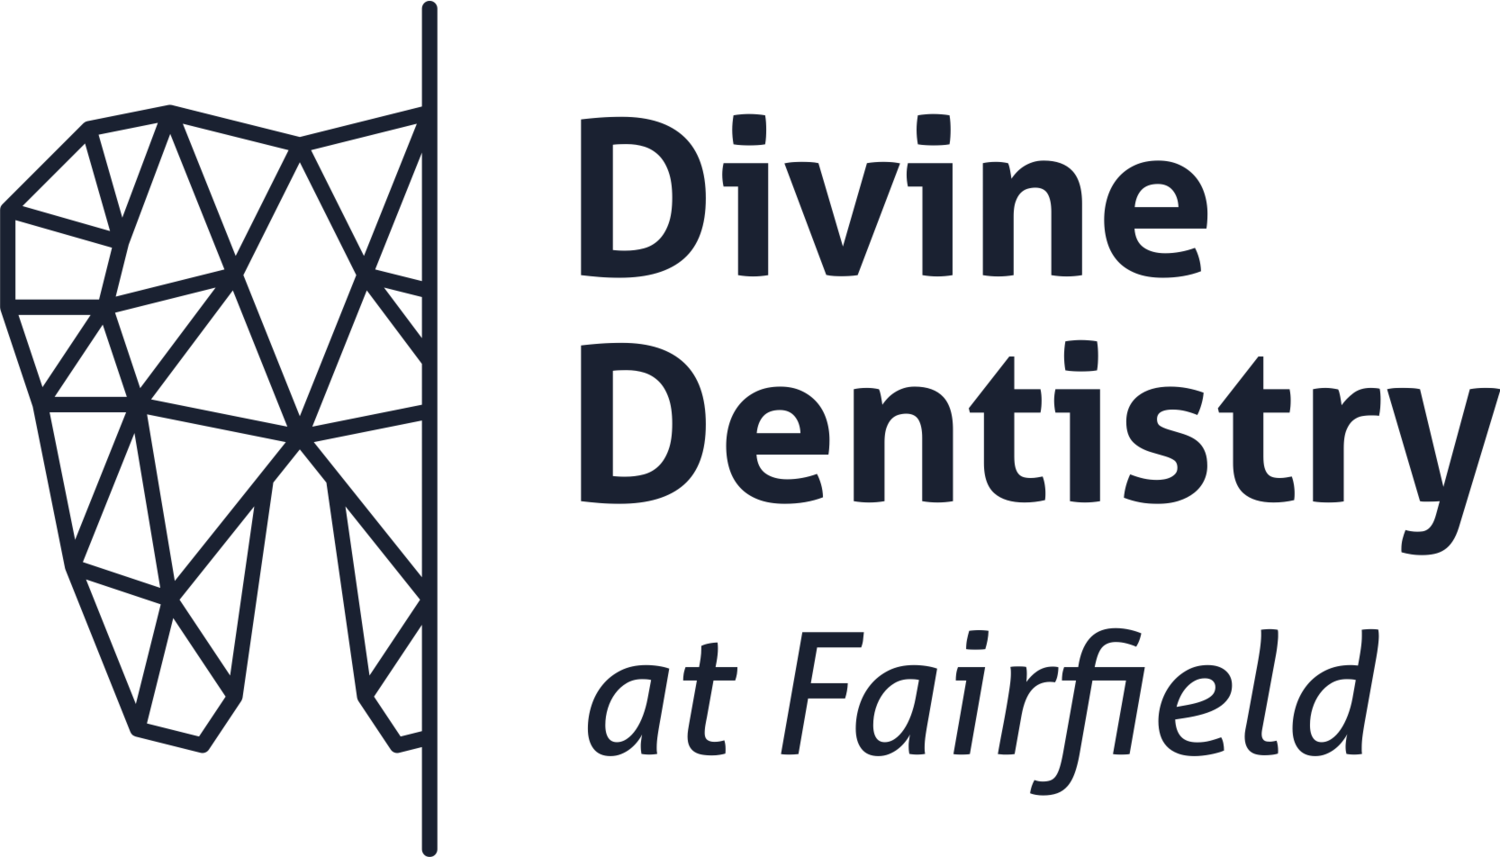 Divine Dentistry at Fairfield